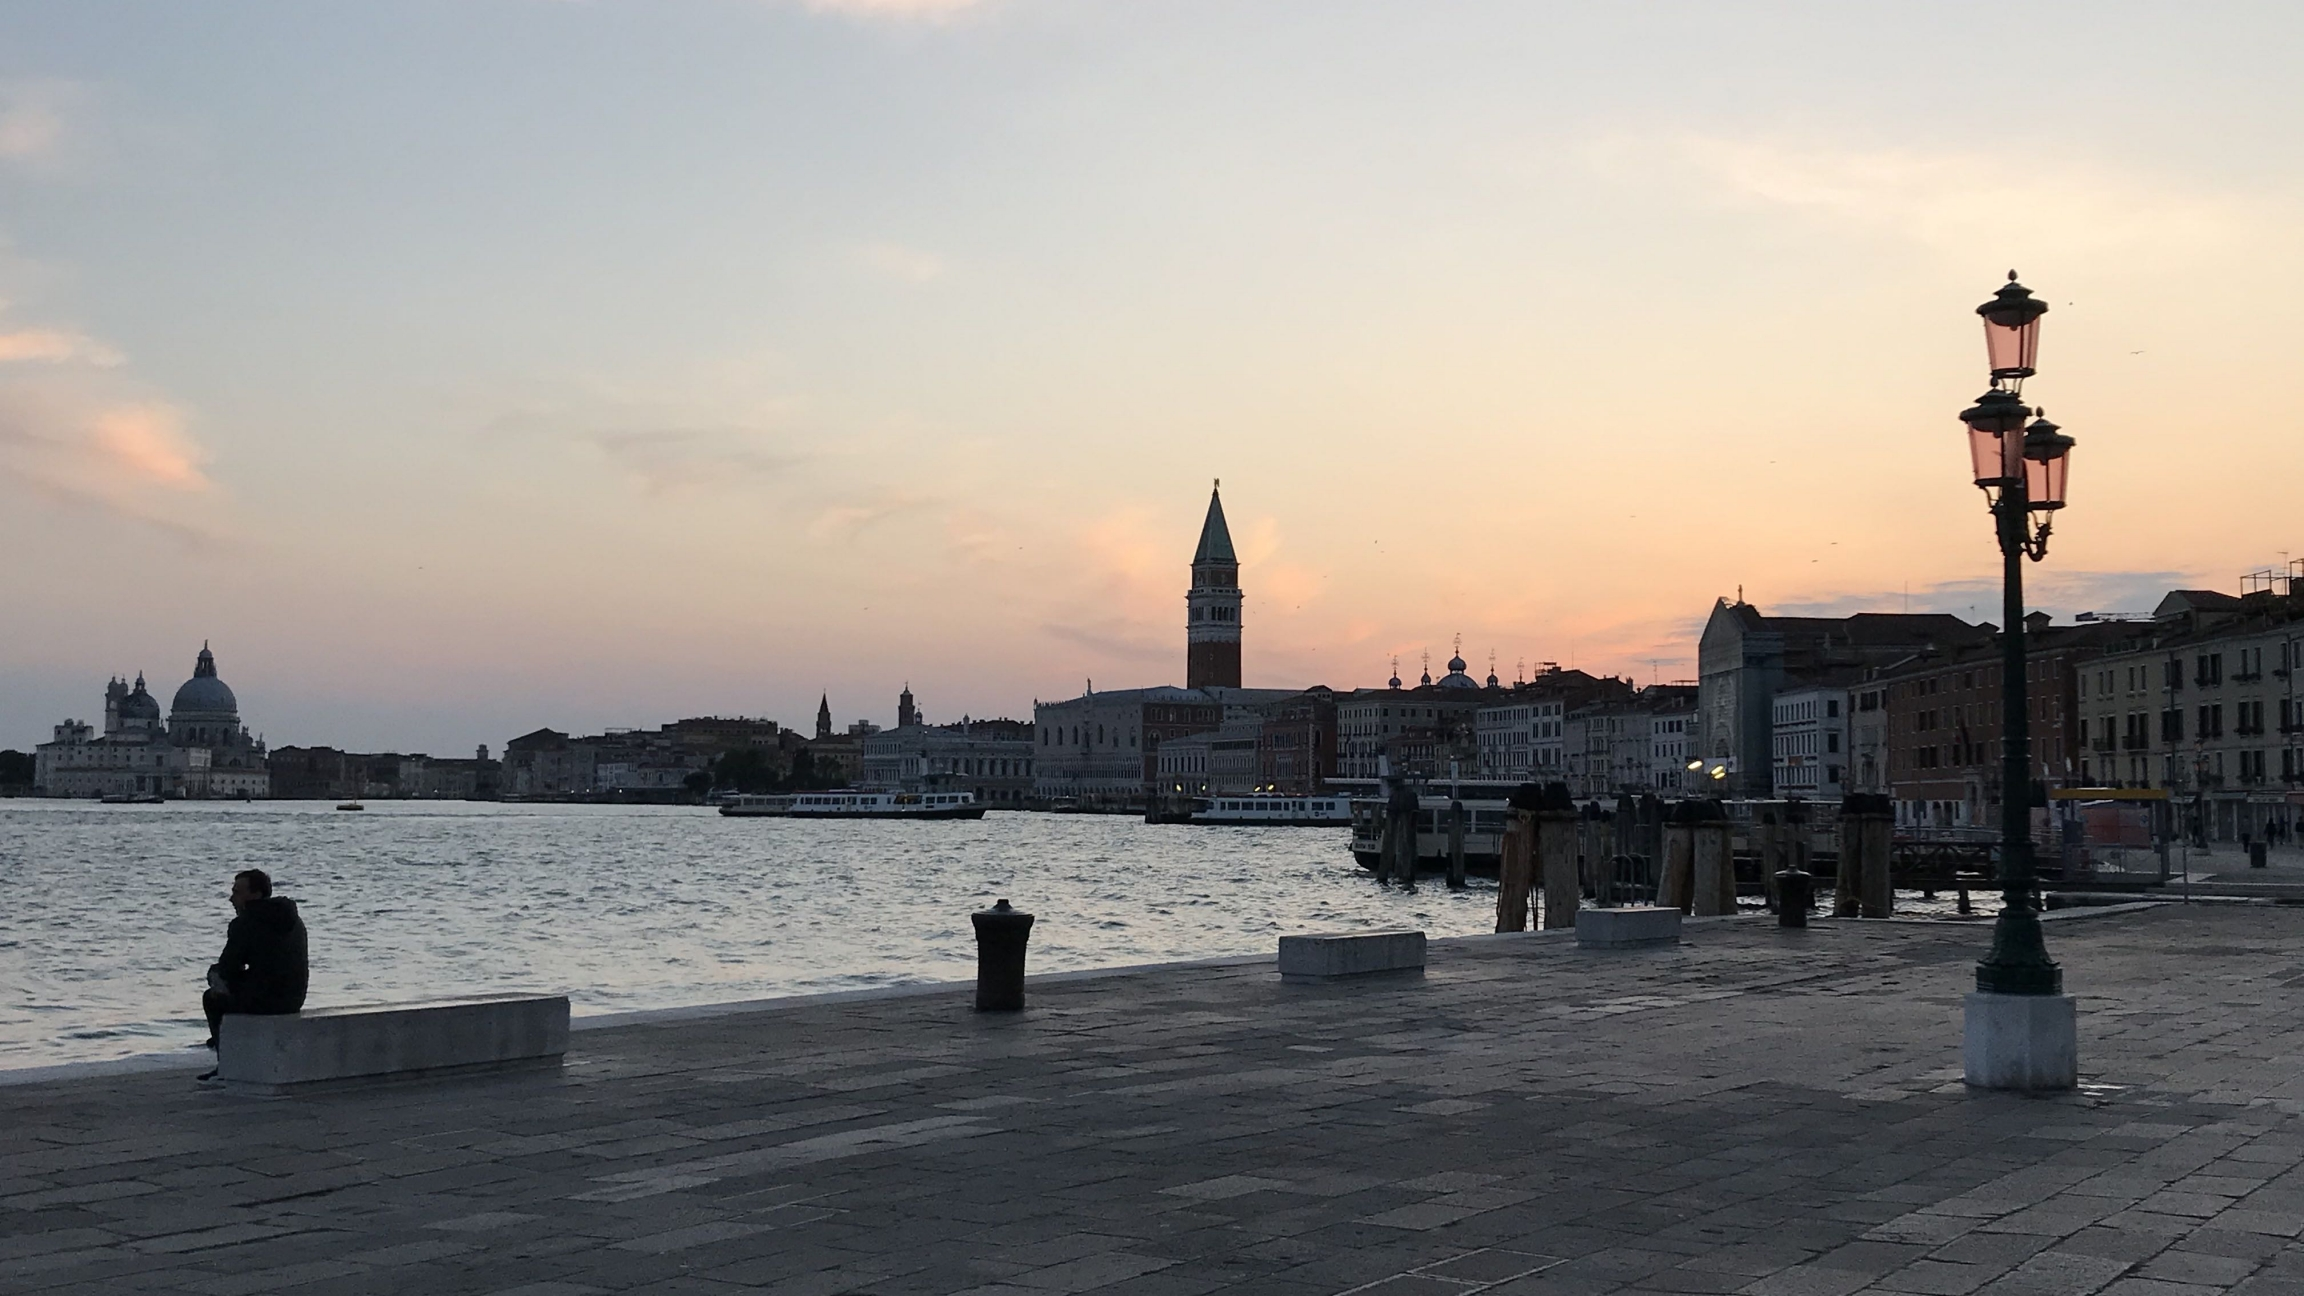 The San Marco basin in Venice appears placid as a result of the slowdown in activity with the country's lockdown in response to the coronavirus.